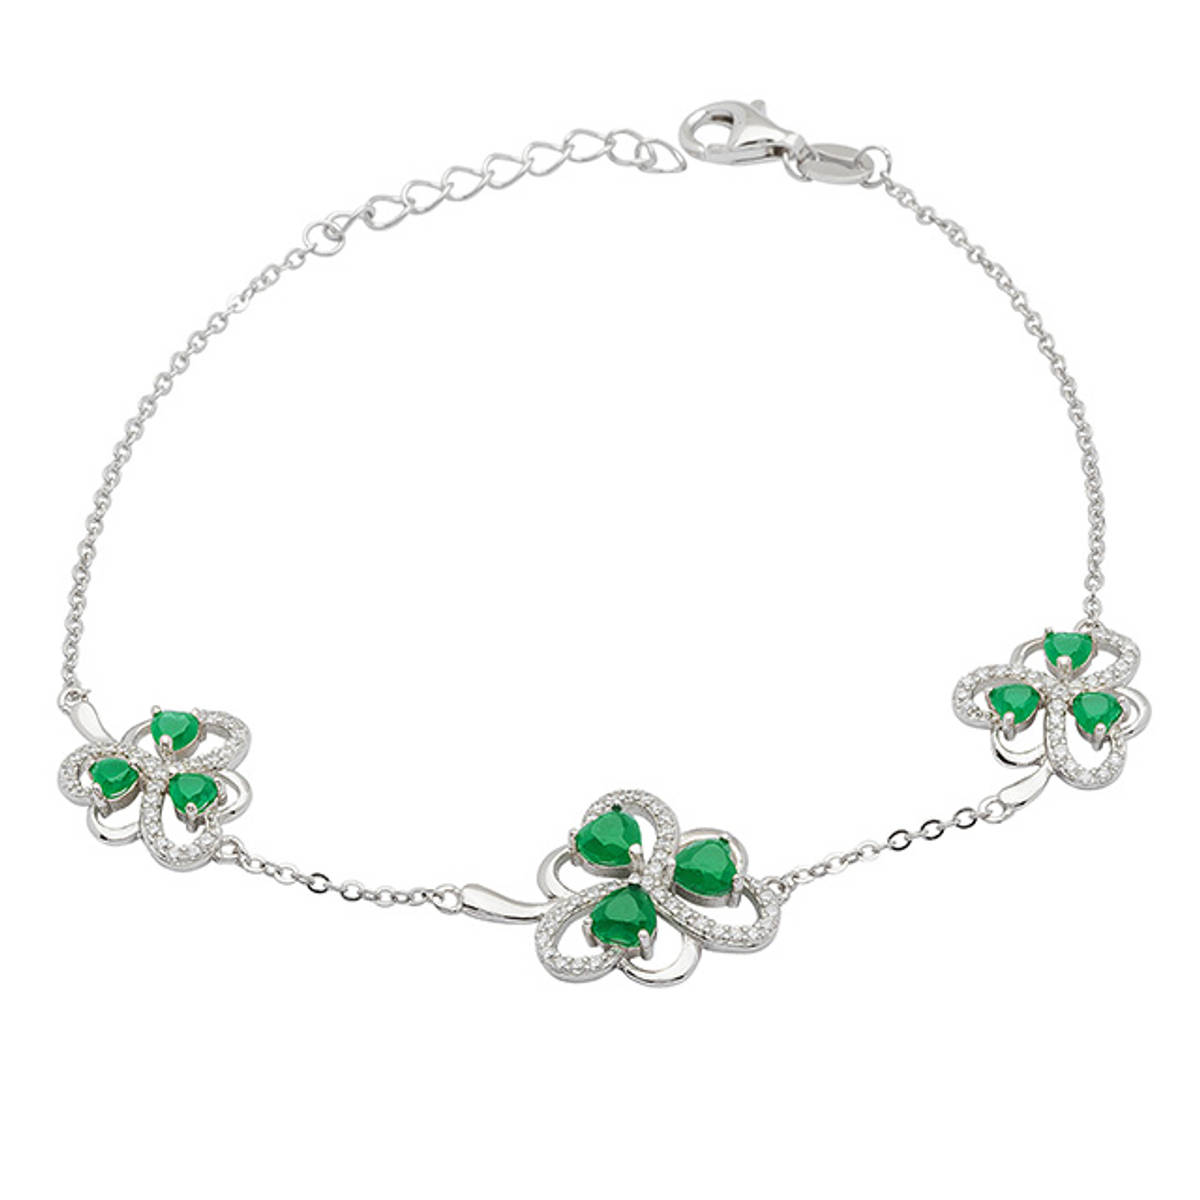 Sterling Silver Shamrock Bracelet with Green Agate and Cubic Zirconia  Size: 19mm